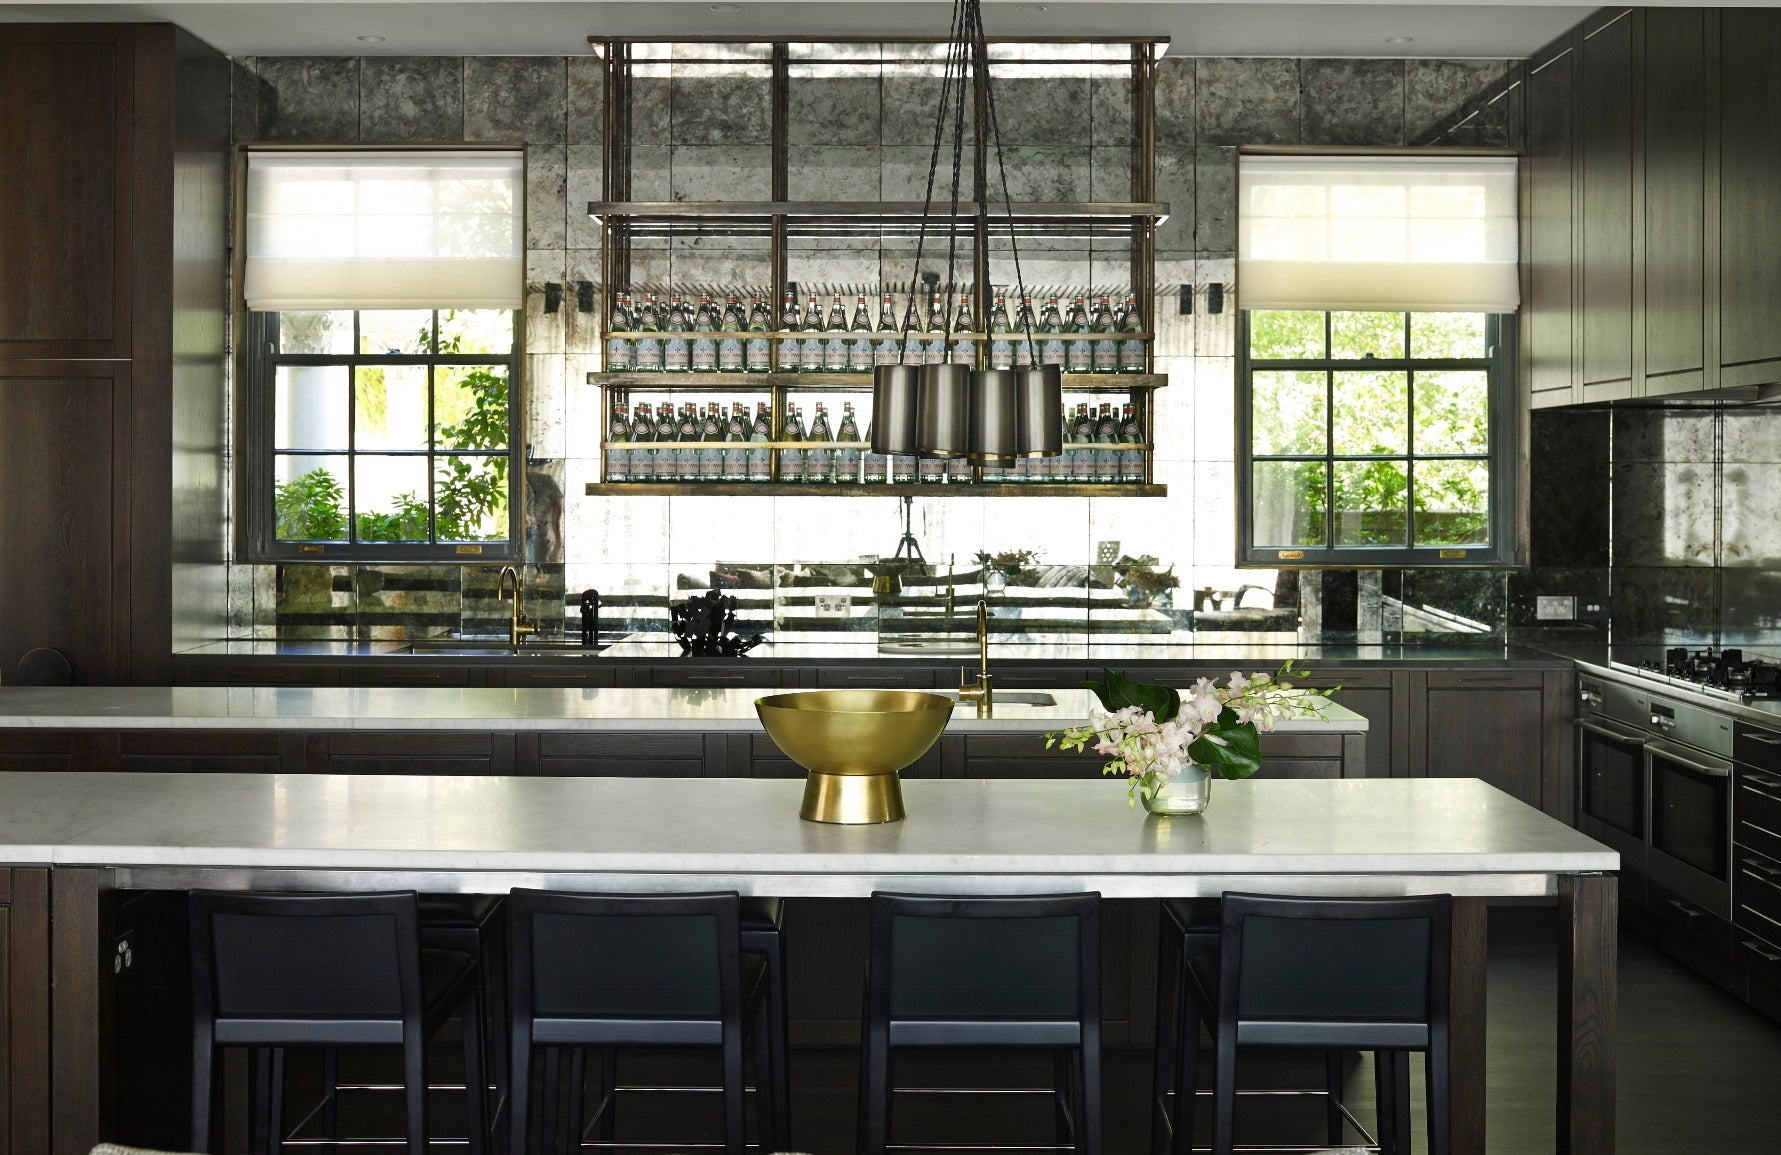 Amazing Kitchen Design Ideas – Kelly Wearstler - LuxDeco.com Style Guide